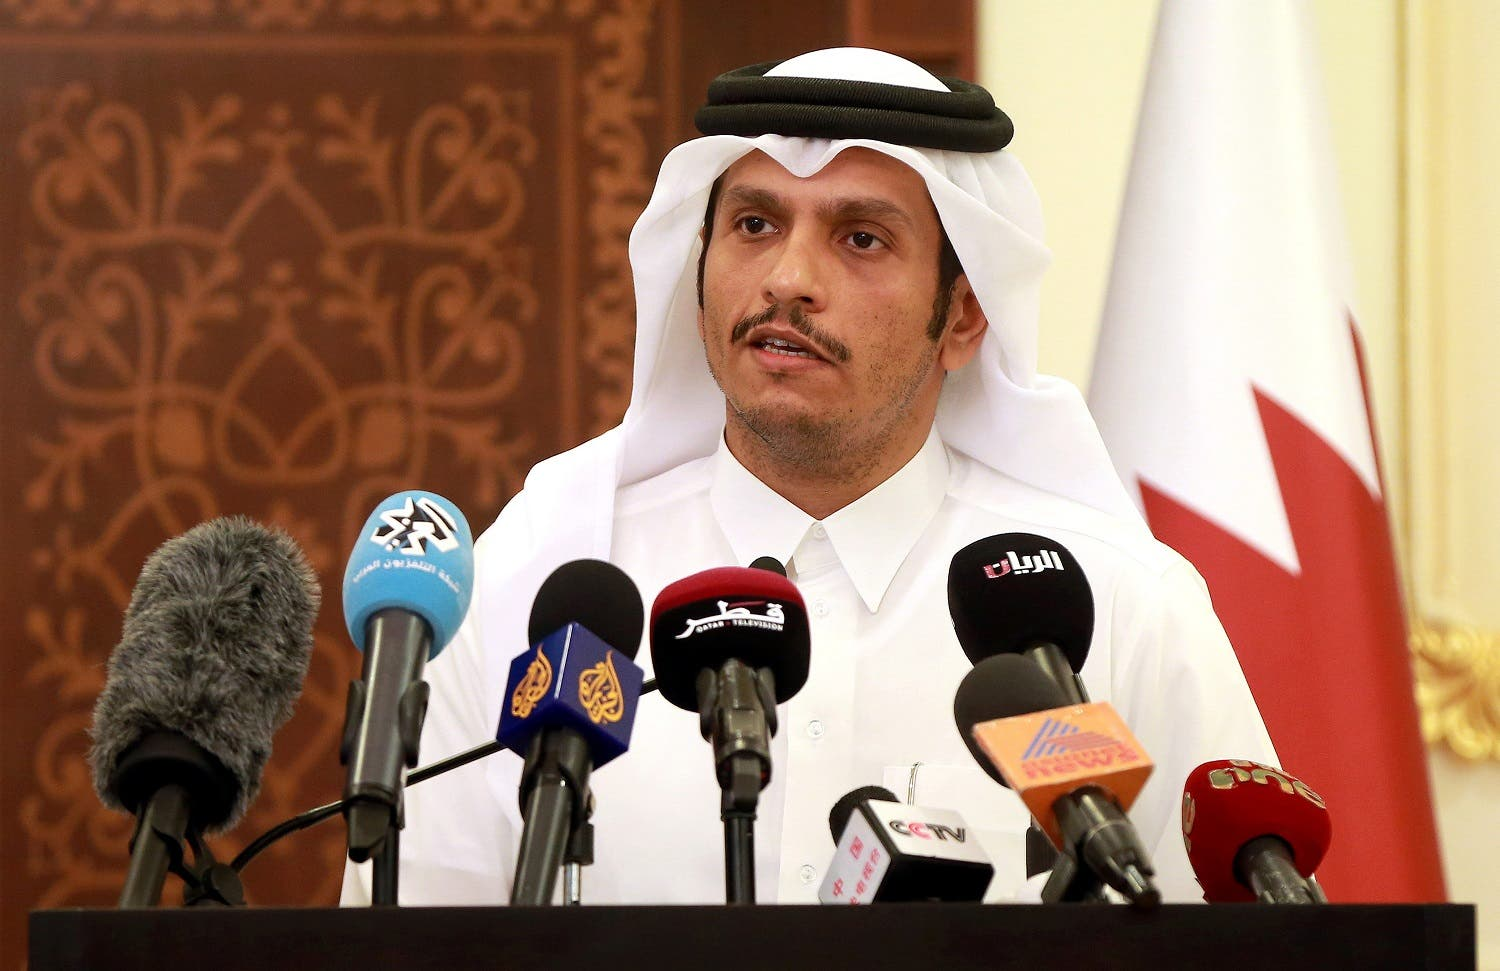 Qatari Foreign Minister Mohammed bin Abdulrahman al-Thani addresses a press conference in Doha on May 25, 2017. (AFP)